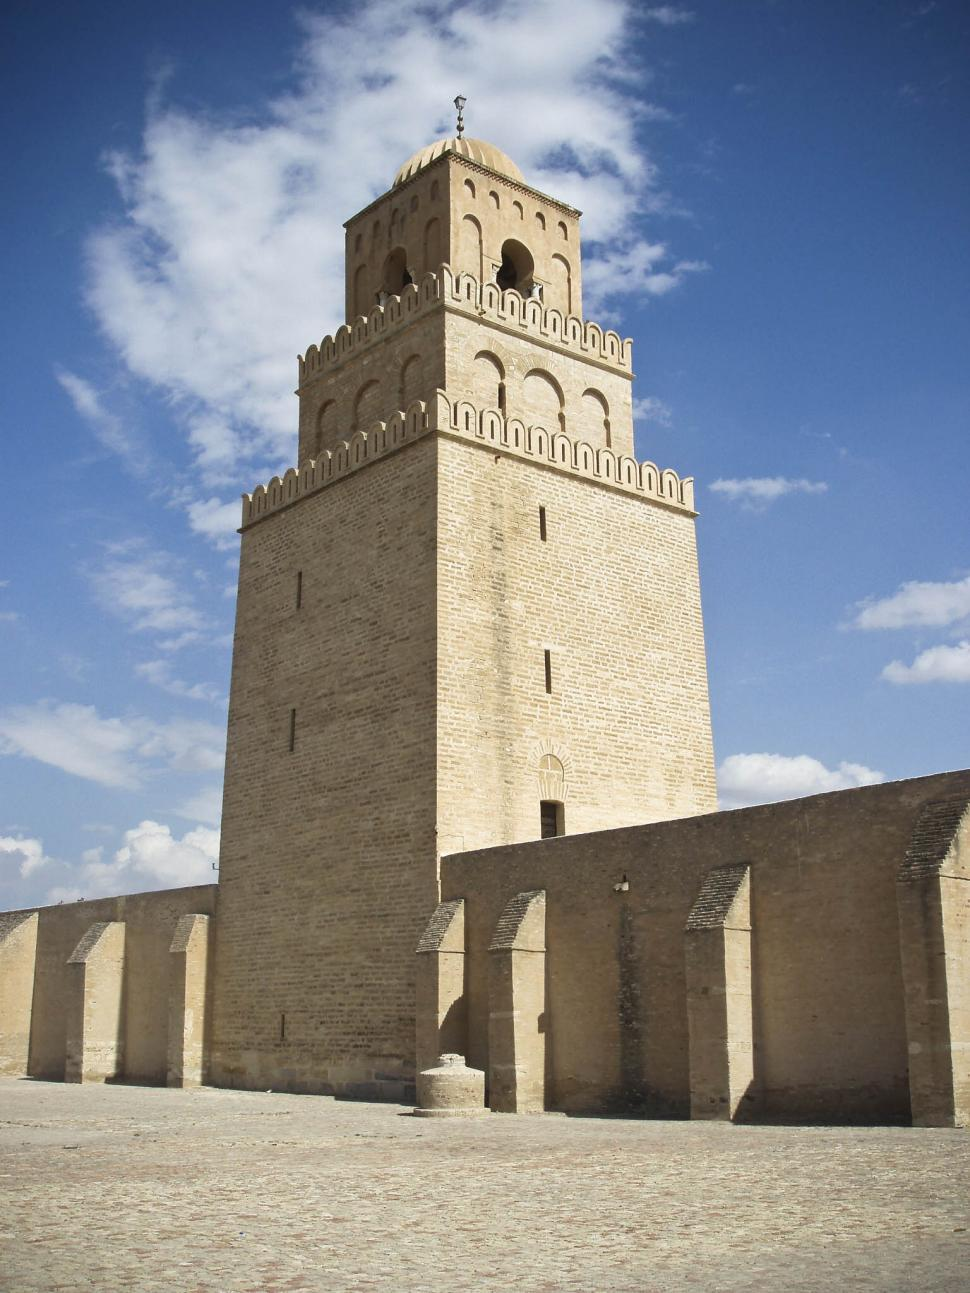 Download Free Stock HD Photo of old fort in tunisia Online